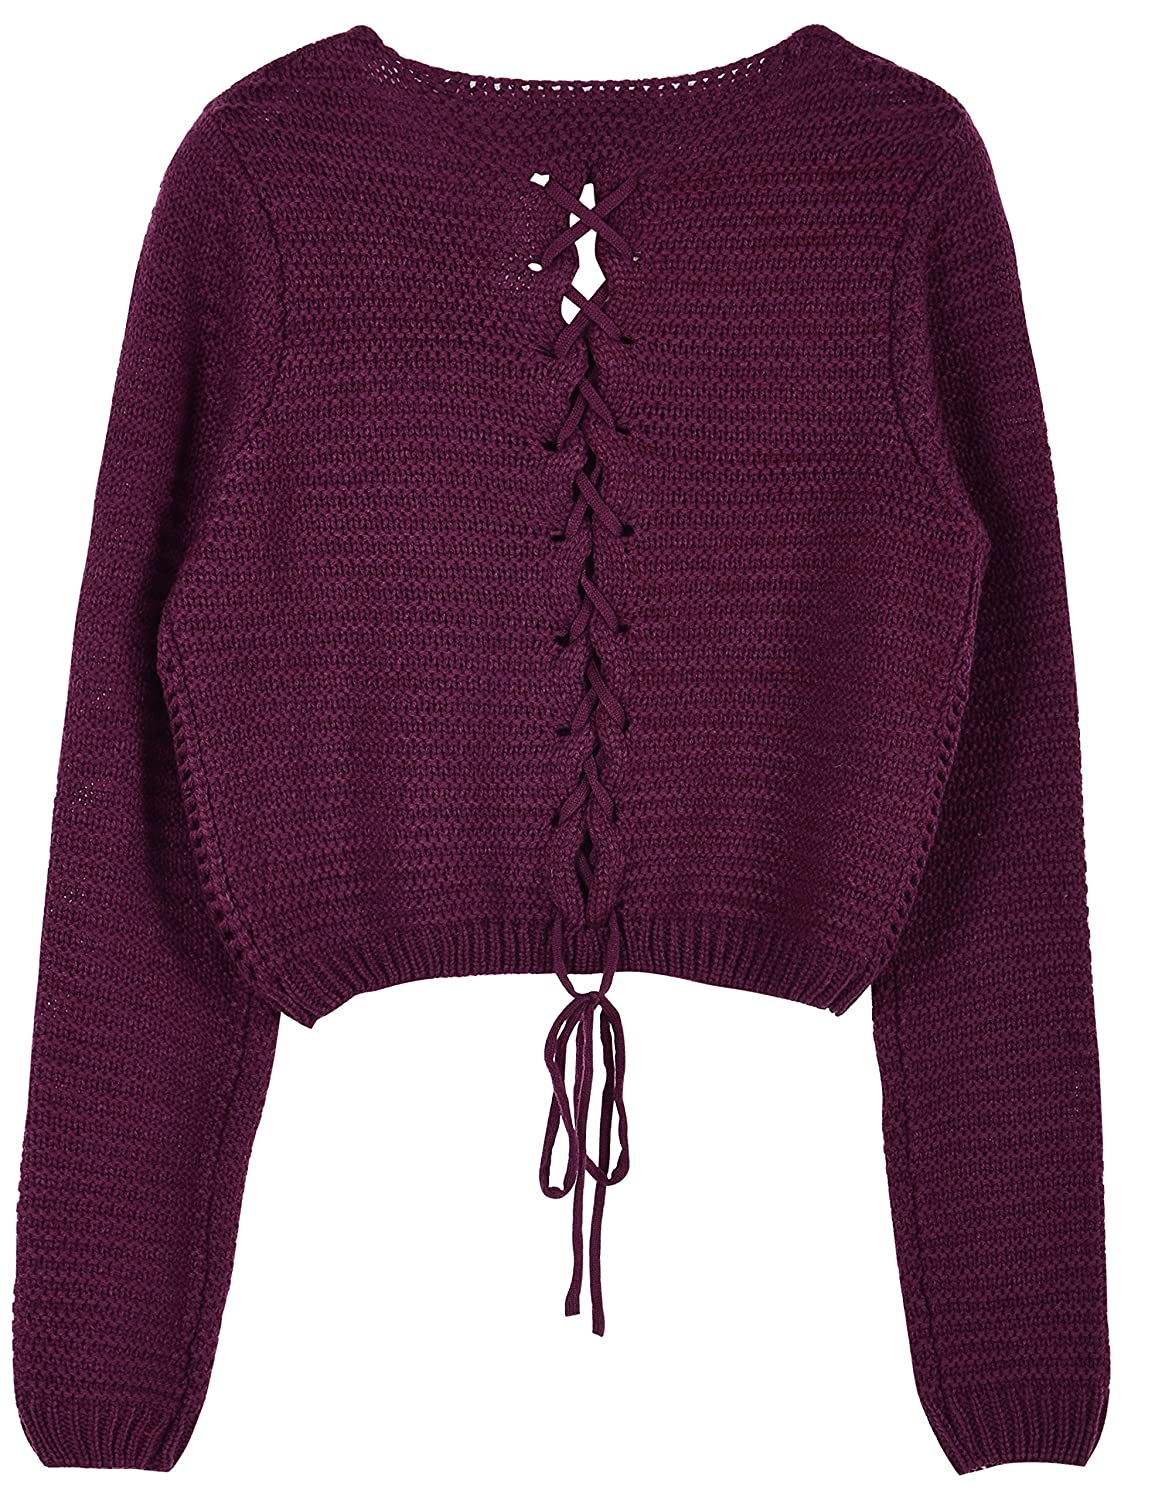 ce26306a99d PrettyGuide Women's Sweater Long Sleeve Eyelet Cable Lace Up Crop ...